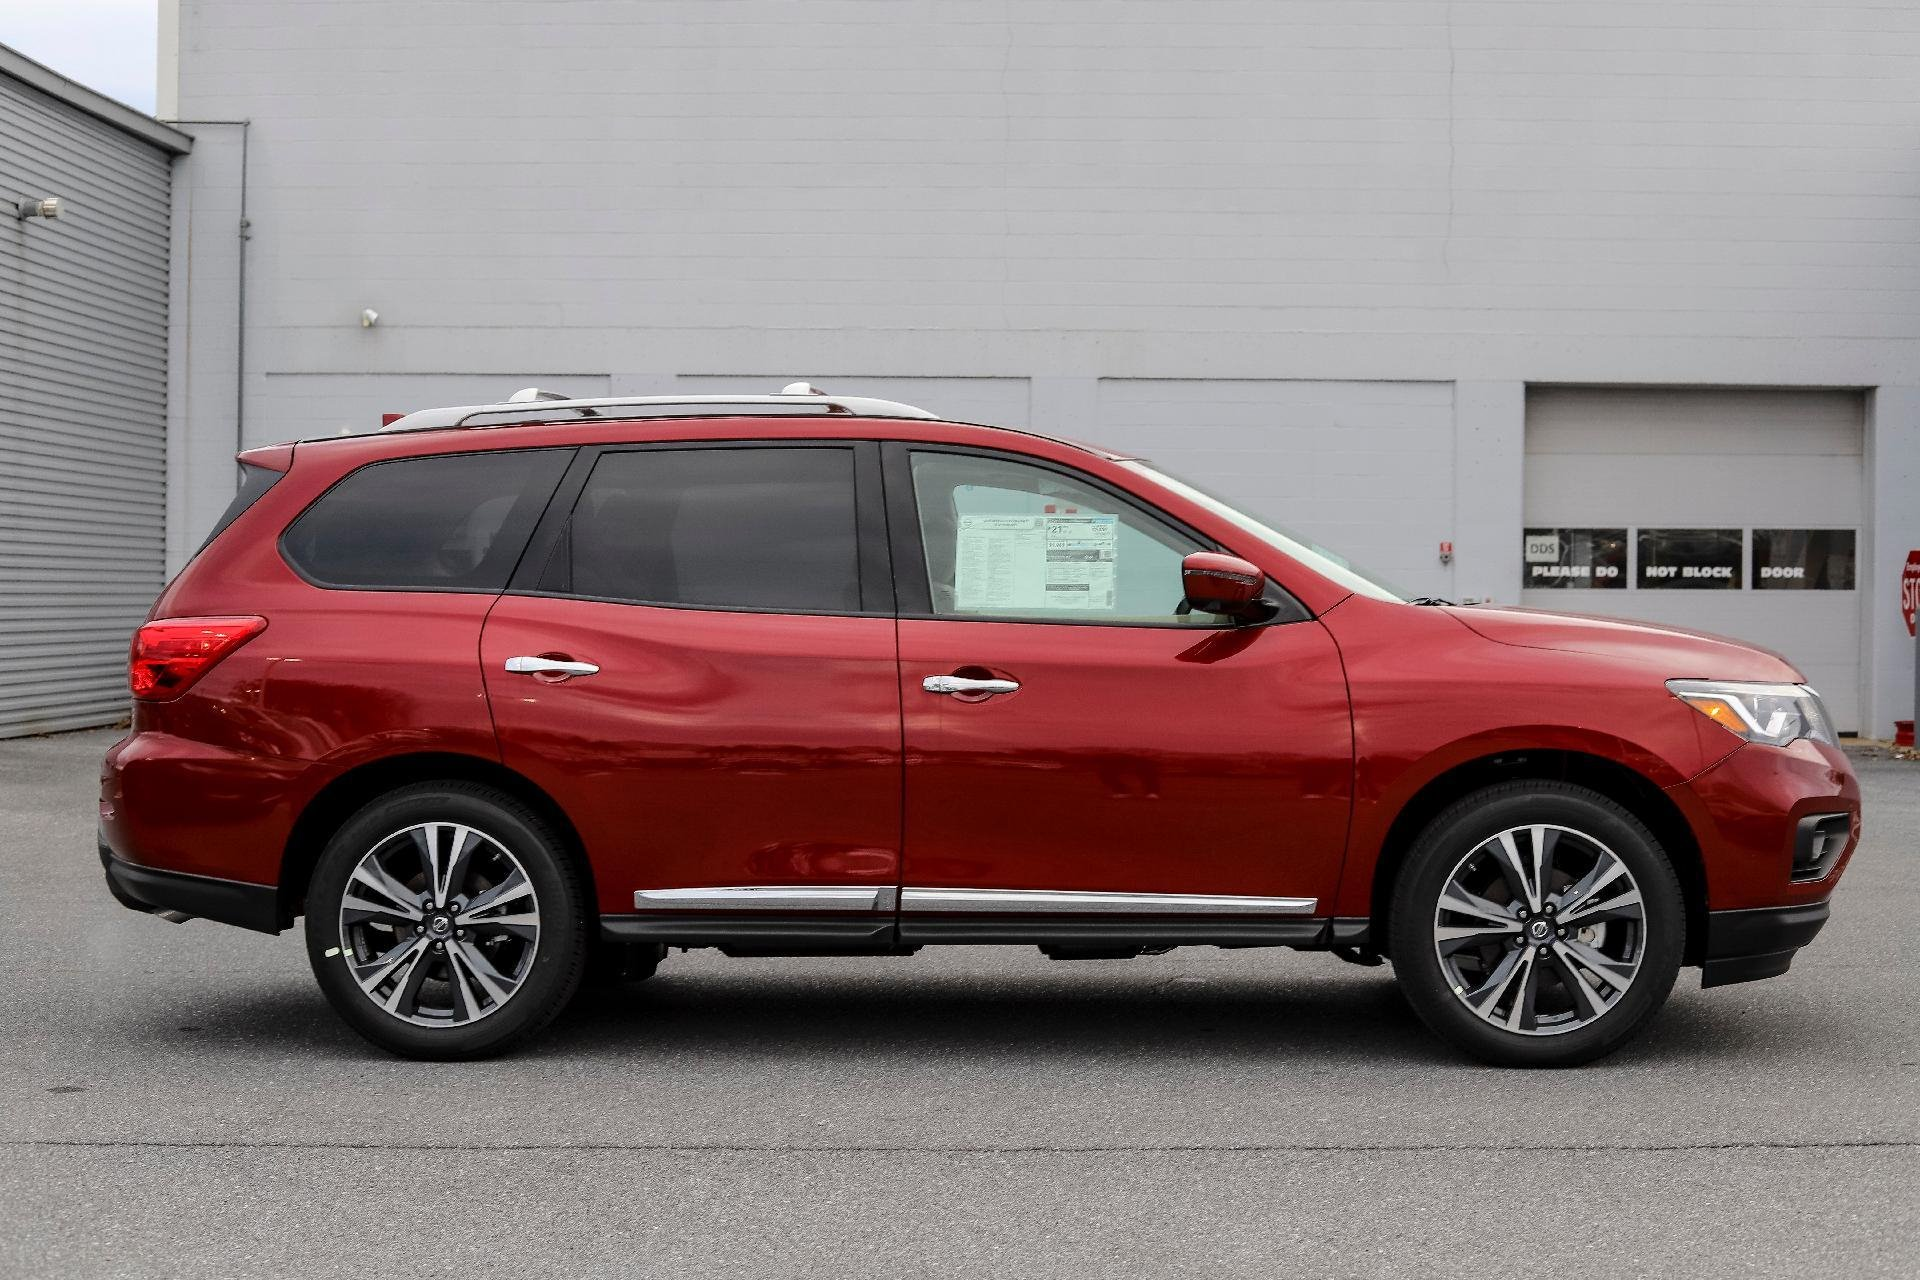 New 2019 Nissan Pathfinder SL SL for sale $39,710 at M and V Leasing in Brooklyn NY 11223 1